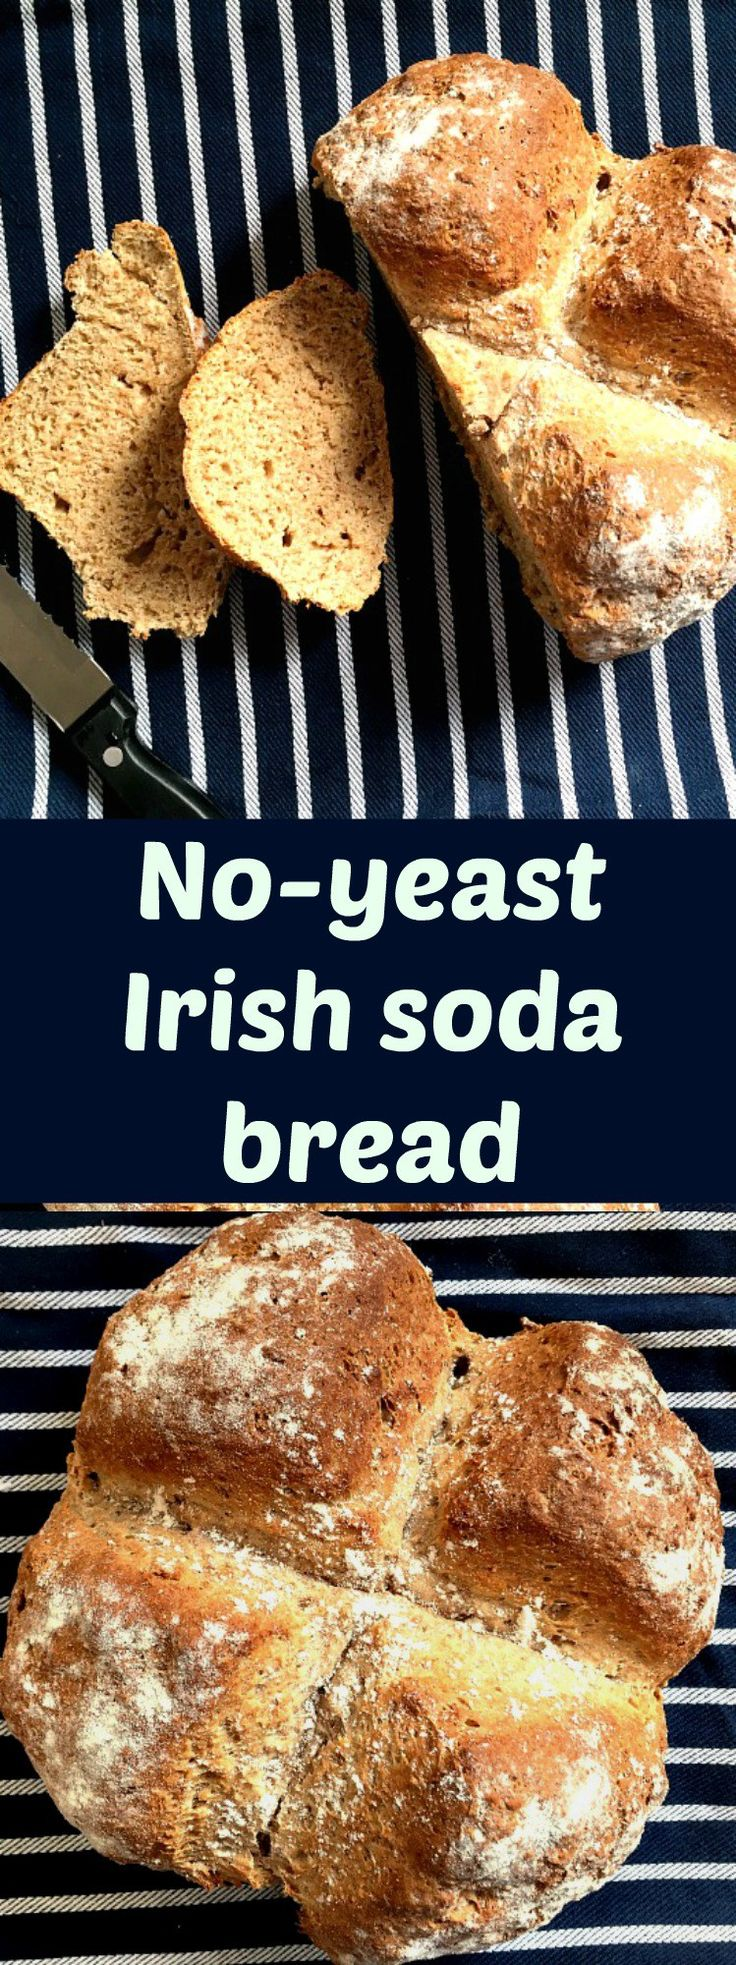 No-yeast Irish soda bread, a crusty bread that needs no kneading. If you love the idea of freshly-baked bread but you have no time to waste with proving, then this is a recipe for you.